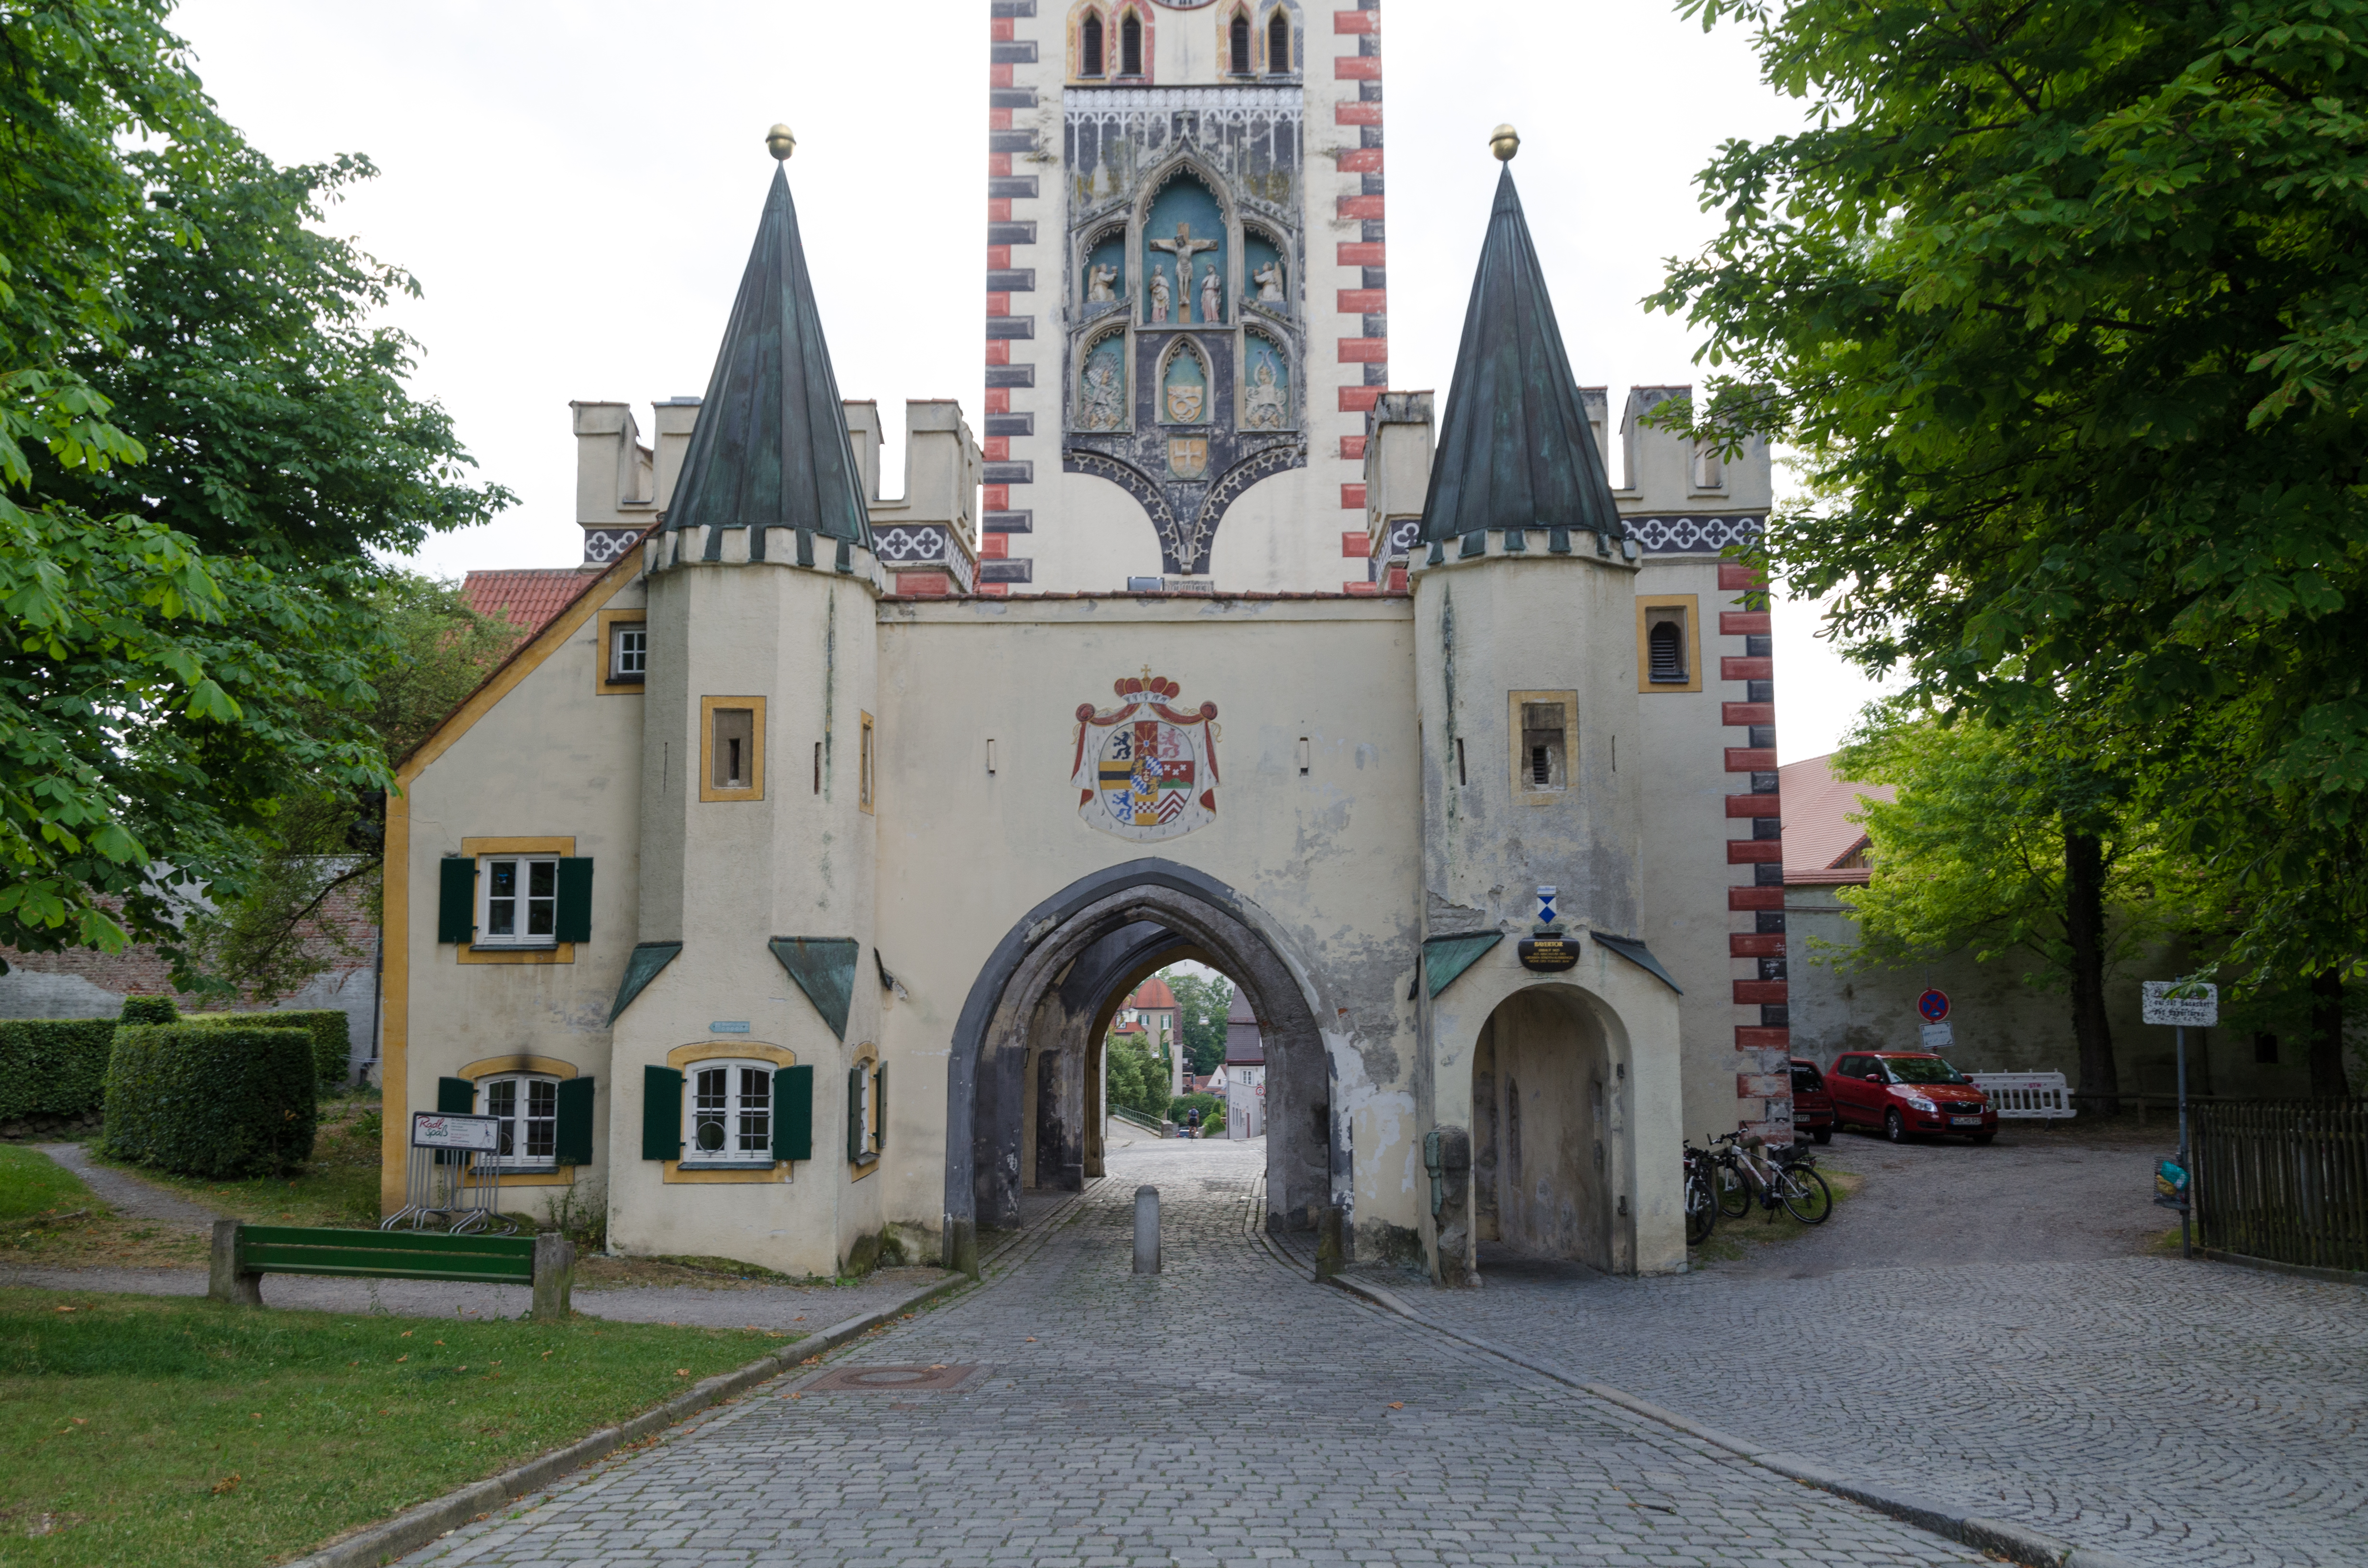 landsberg am lech divorced singles Welcome to our apartment or holiday flat in one of the nicest cities in germany - landsberg is a medieval town from the 13th and 14th century on the romatic road, near to munich, augsburg, the alps, etc.